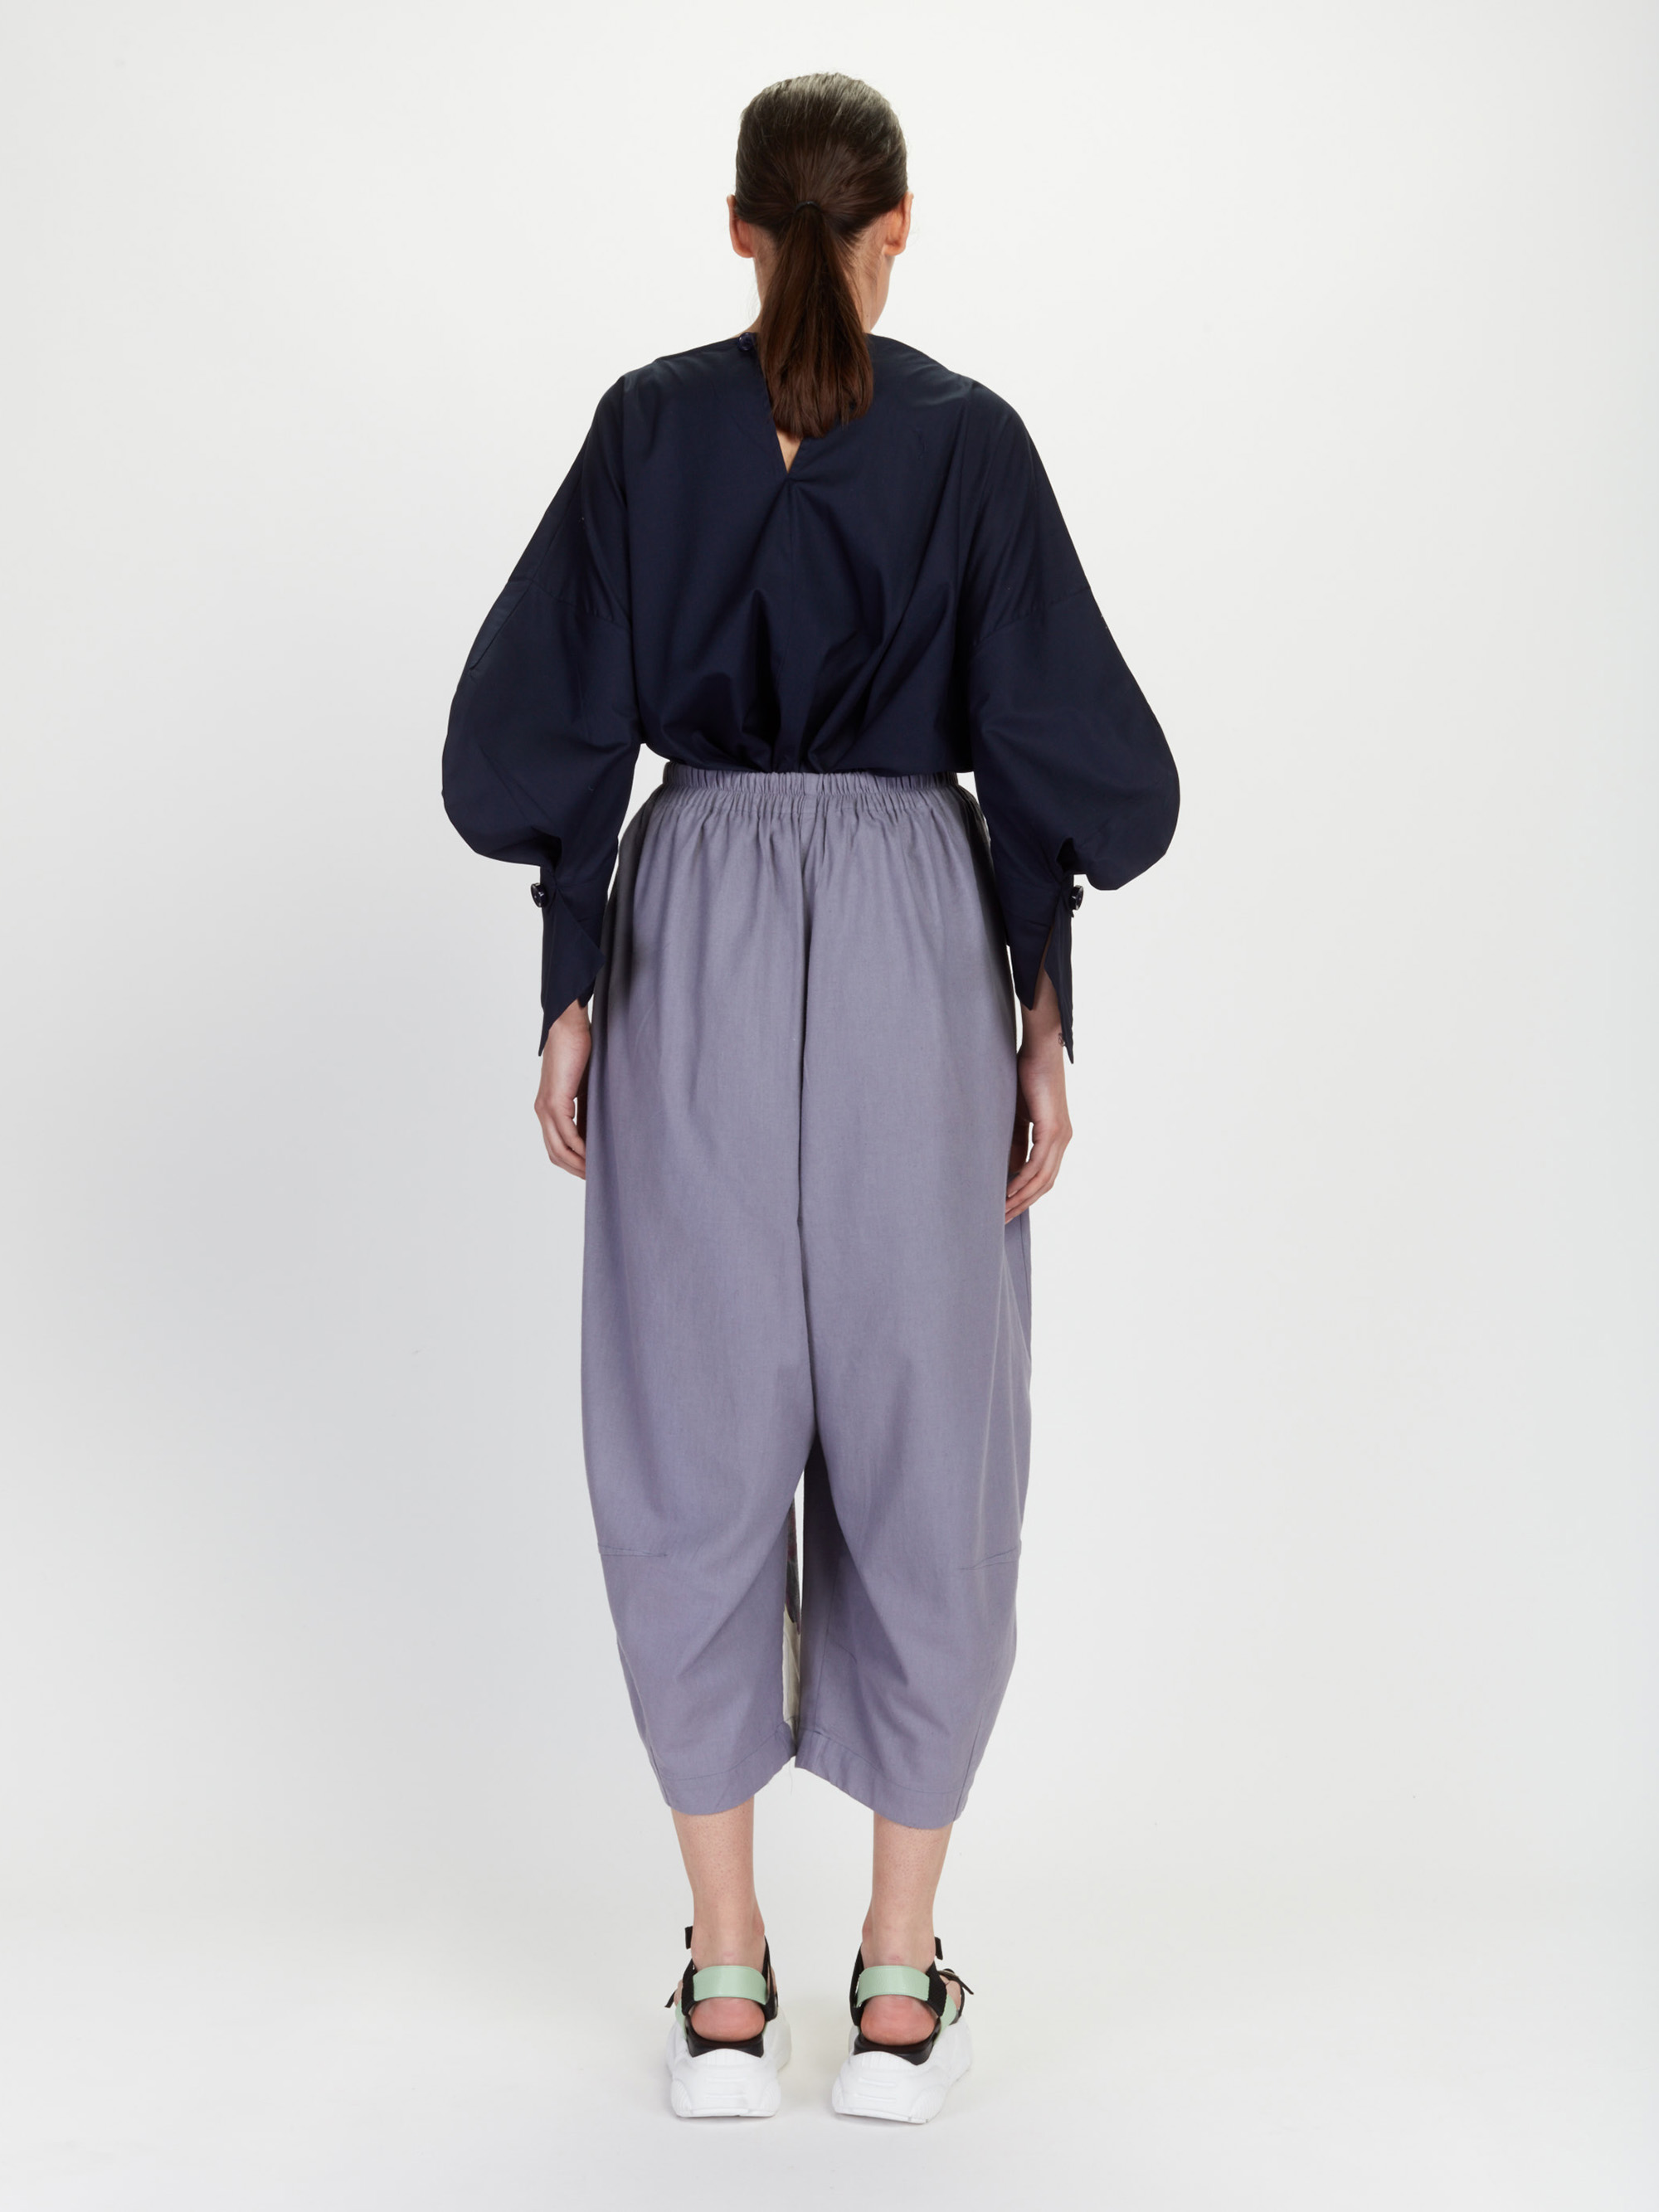 jt_zappa-printed-pant_29-26-2018__picture-1282